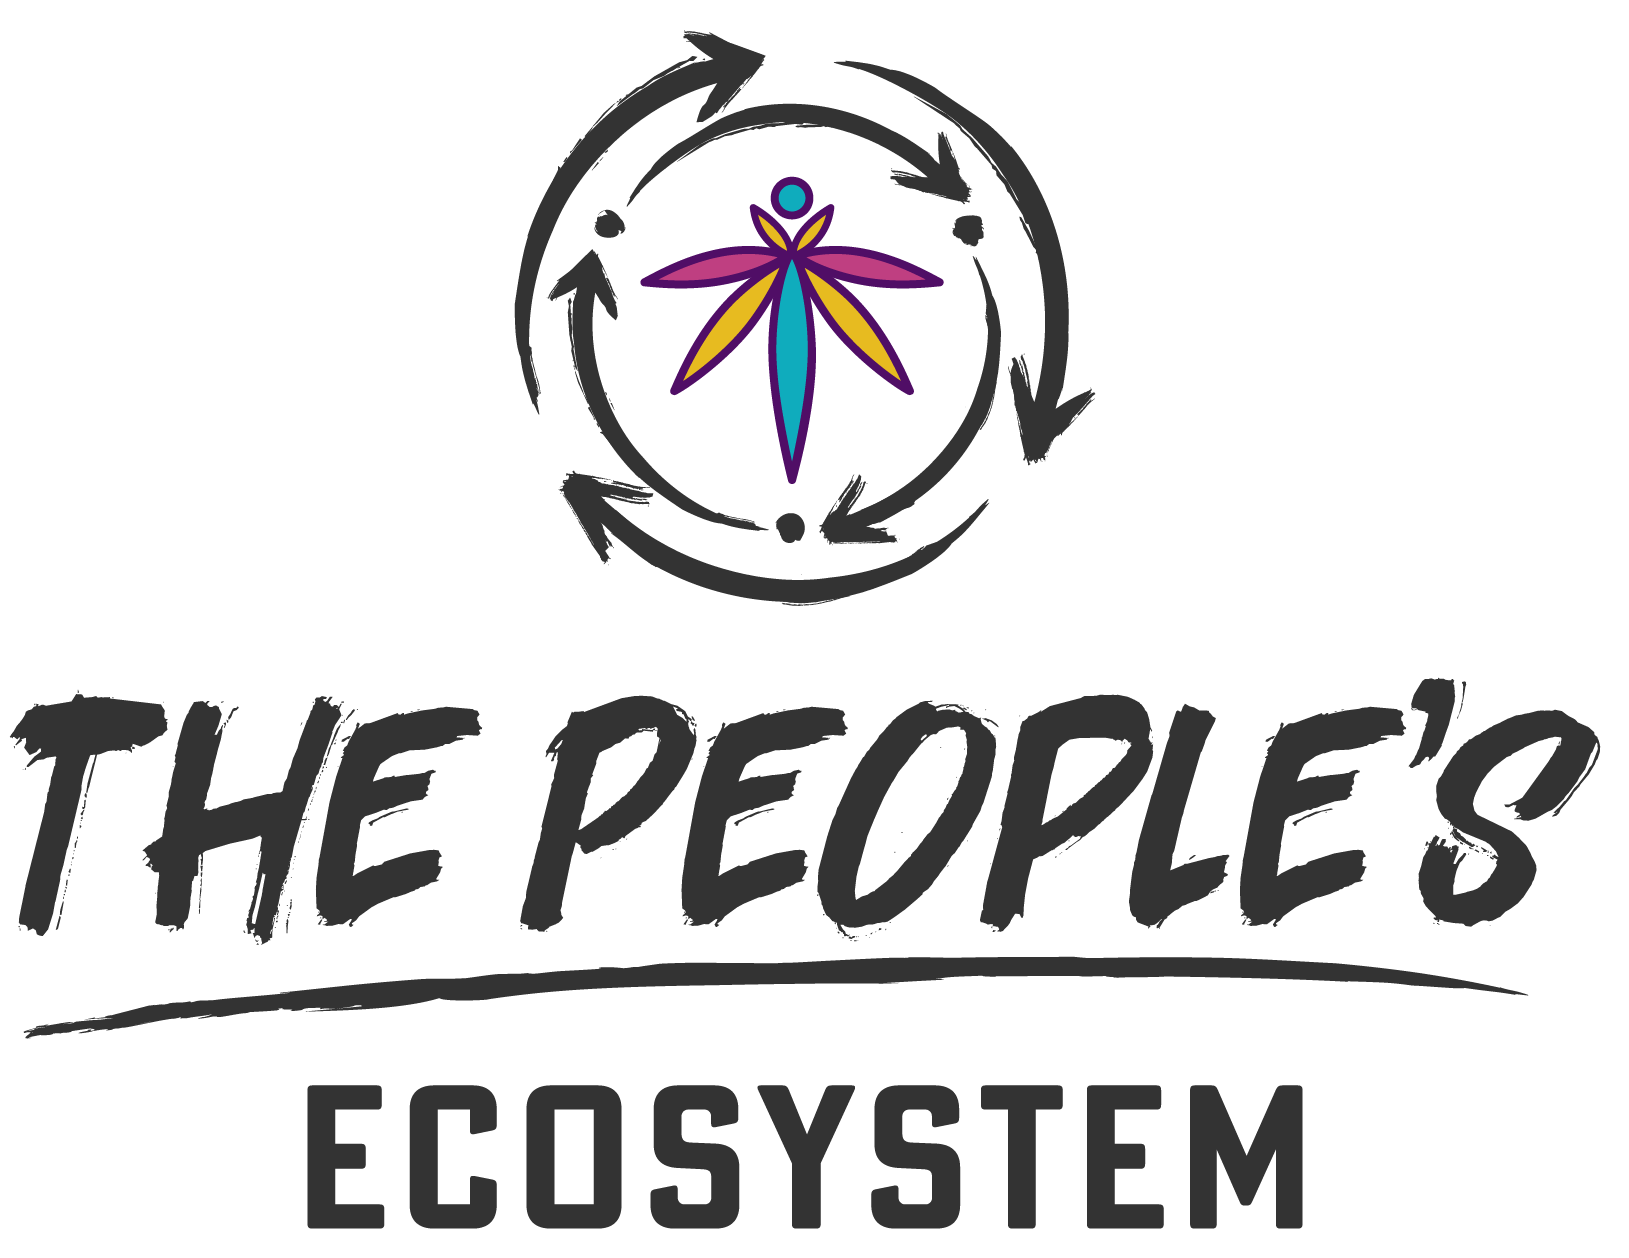 The People's Ecosystem